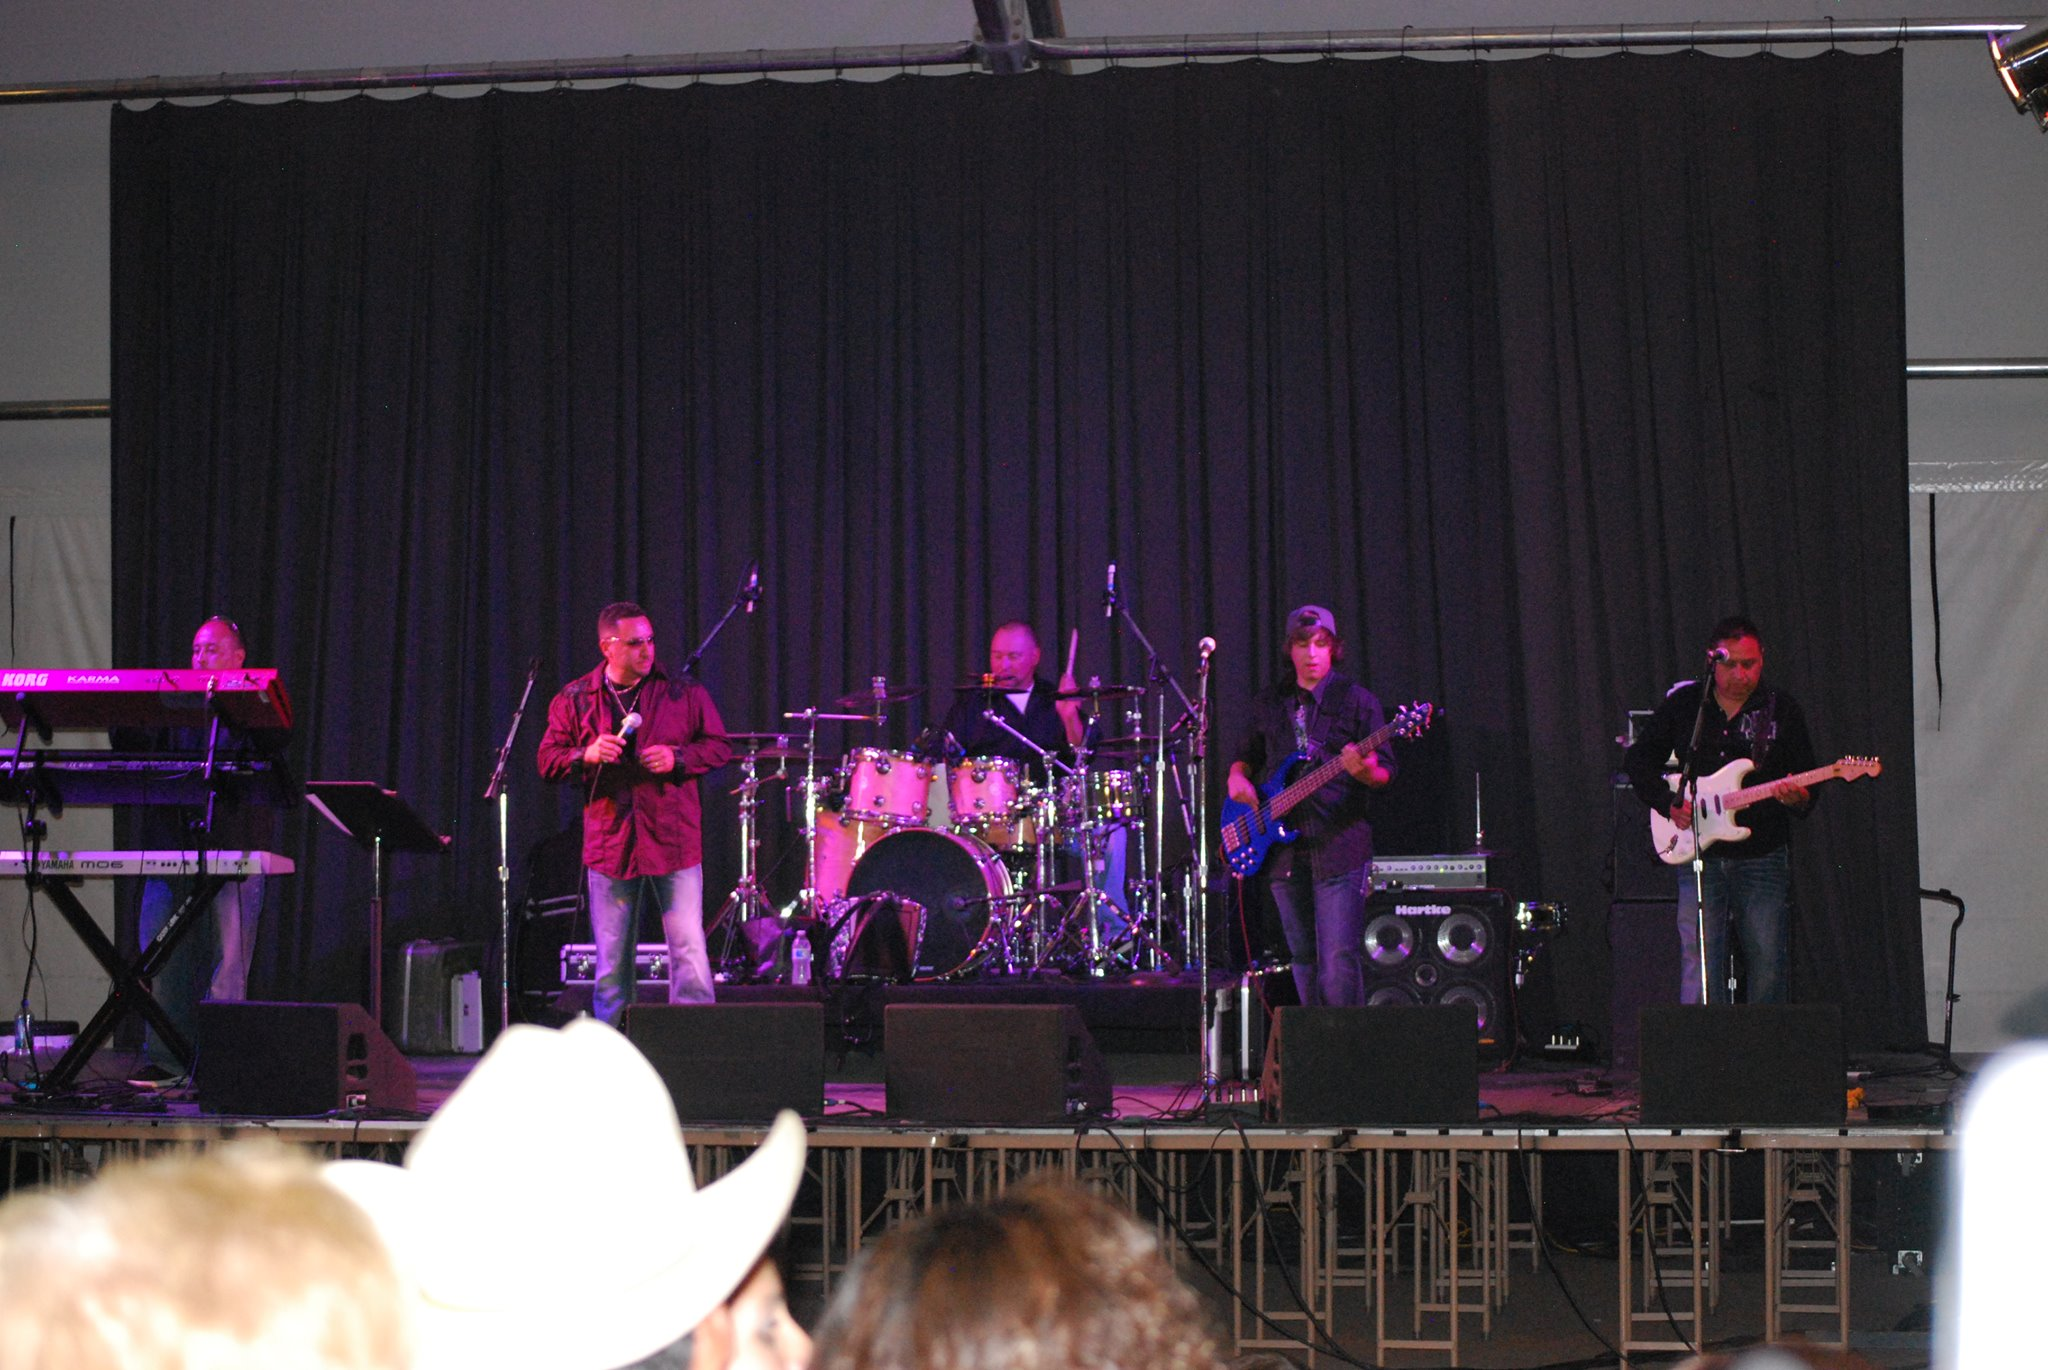 <p>Colorado Springs band Tejano Heat plays during Fiesta Day at the 2013 Colorado State Fair in Pueblo.</p>